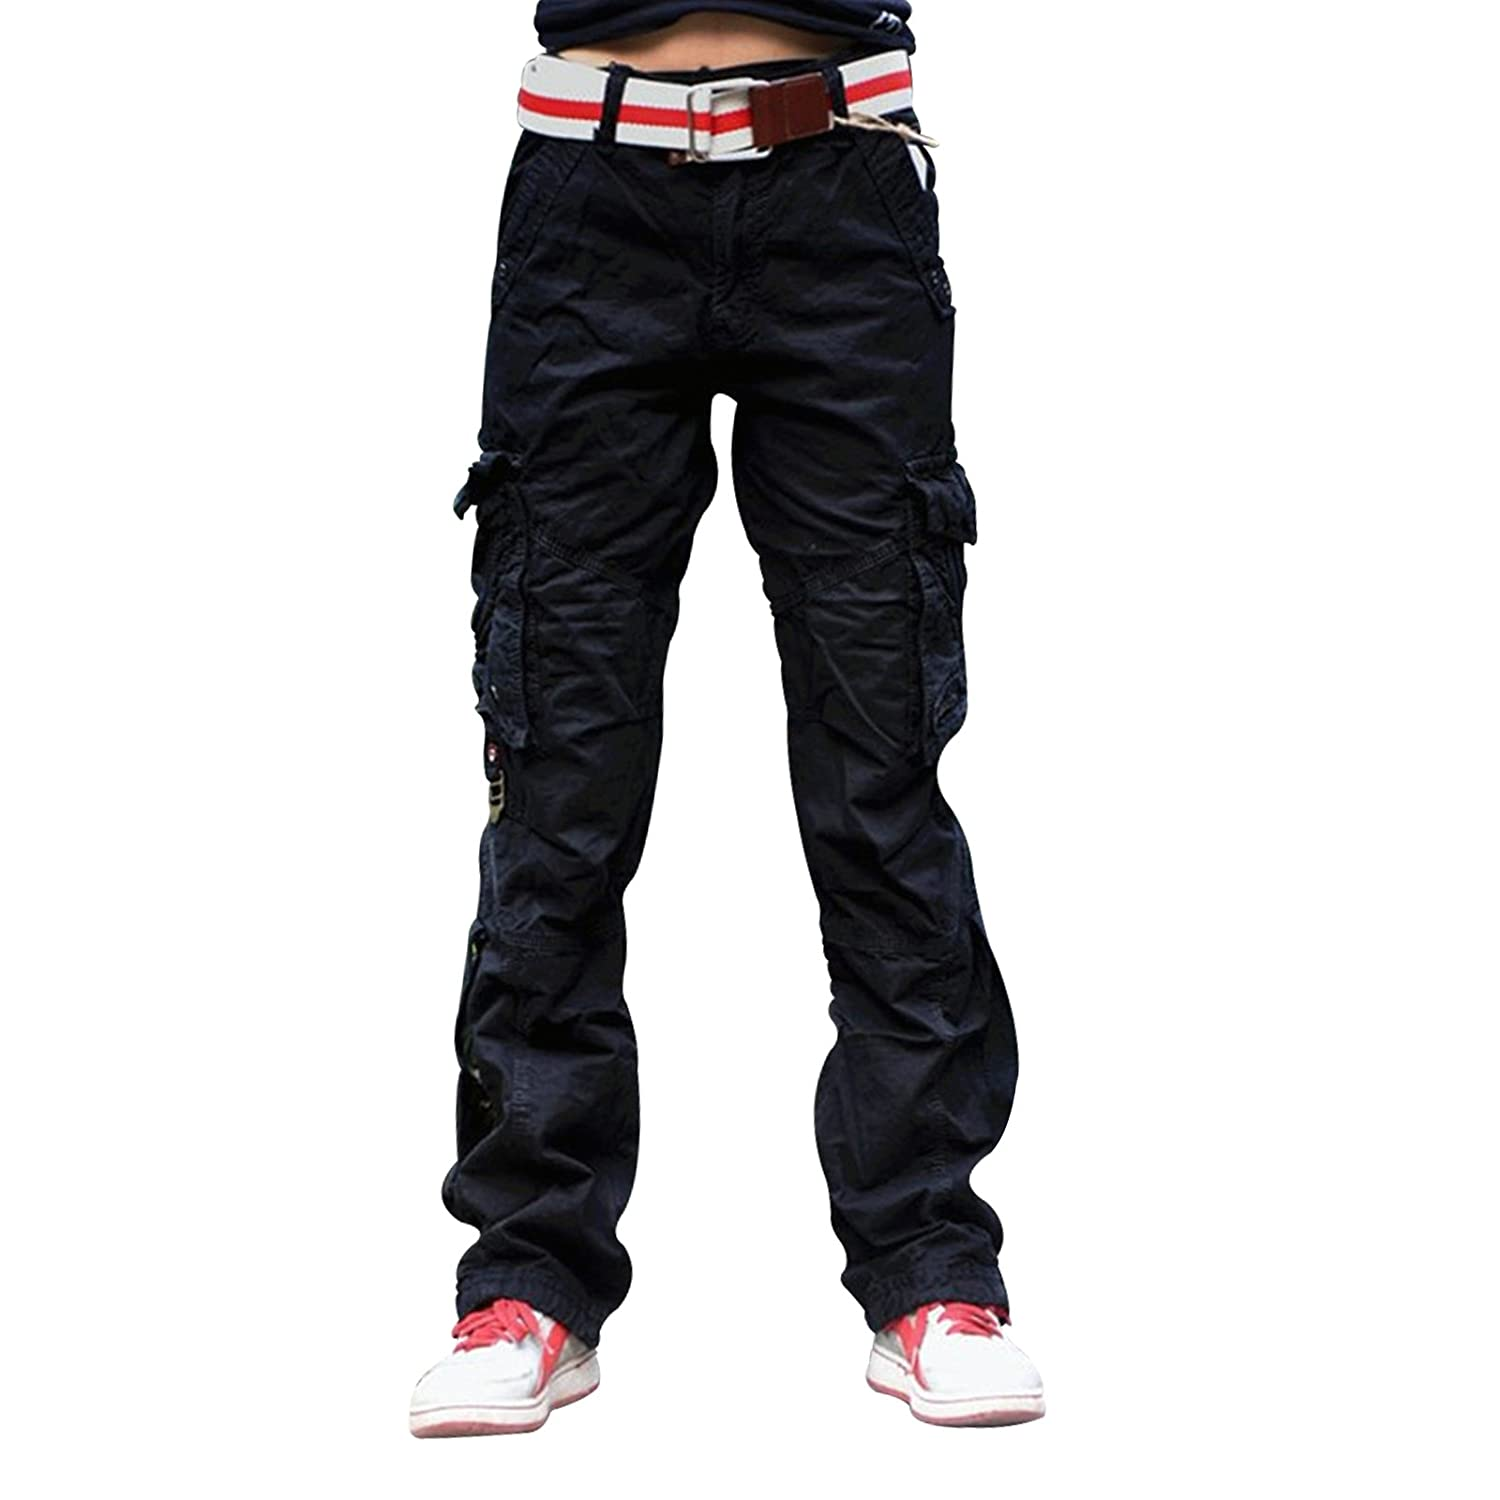 Eskaay Women's Casual Cargo Pants Solid Military Army Styles Cotton Trousers